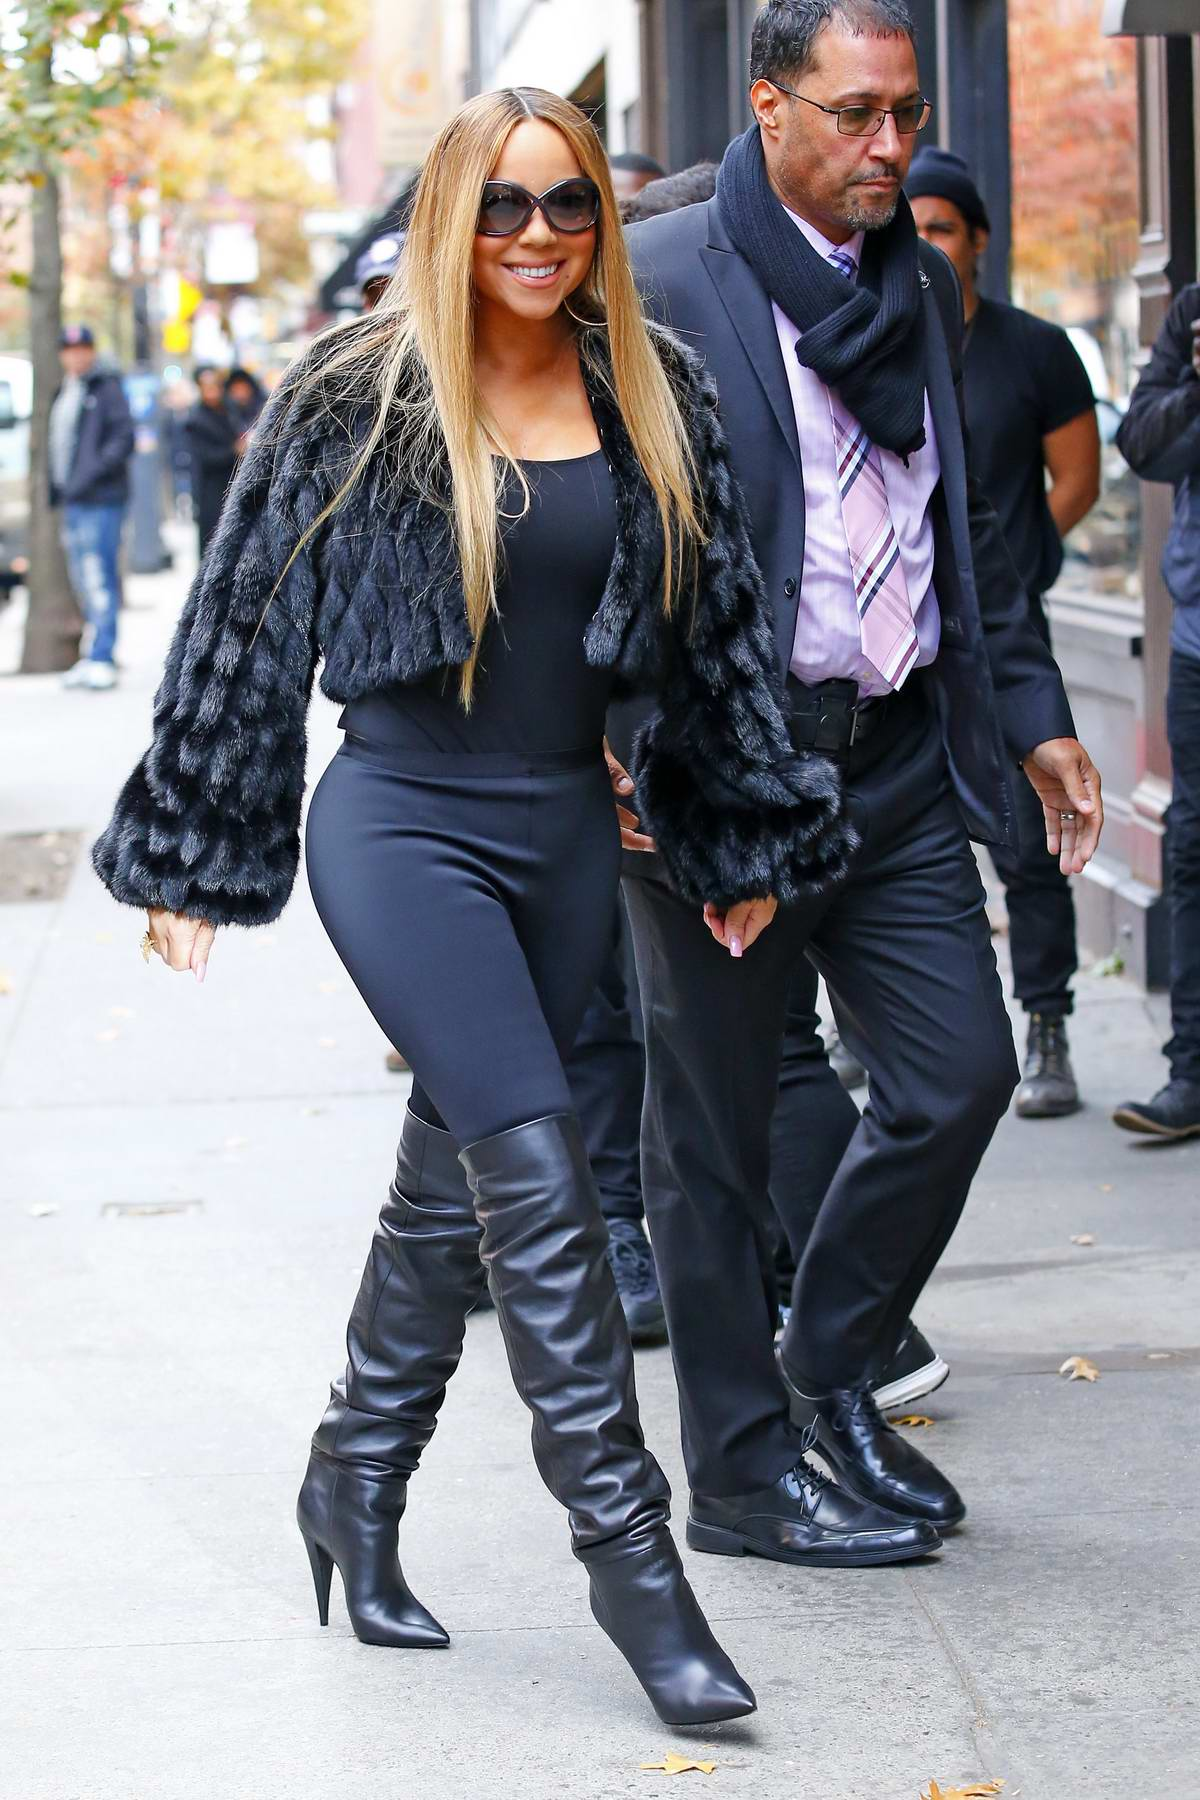 Mariah Carey wears black fur coat, black leggings with a pair of knee high boots while out in New York City